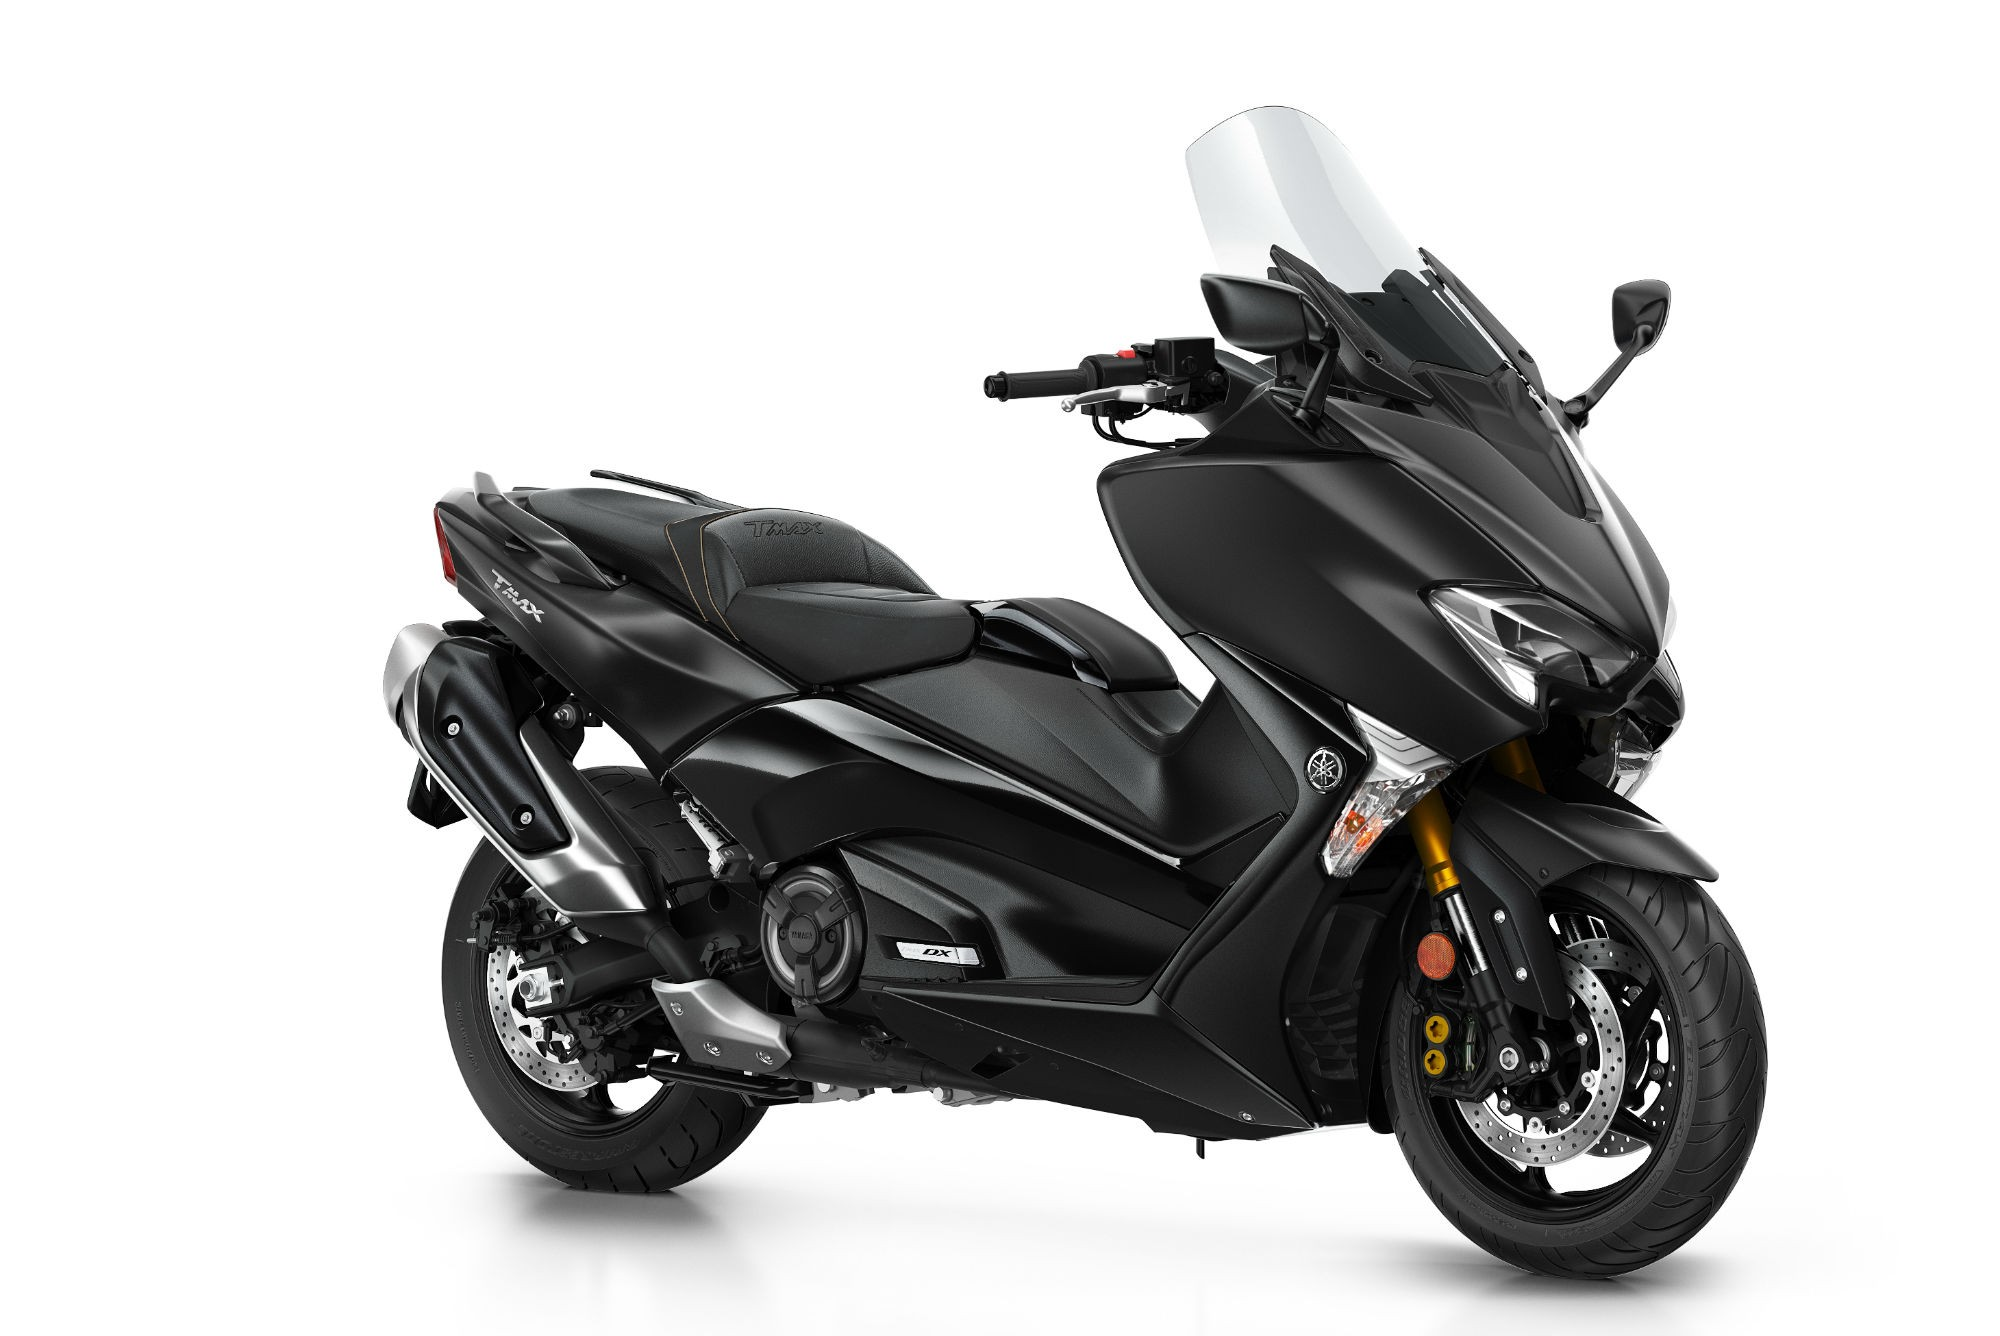 2017 Yamaha TMAX Scooter Presented for Europe - autoevolution